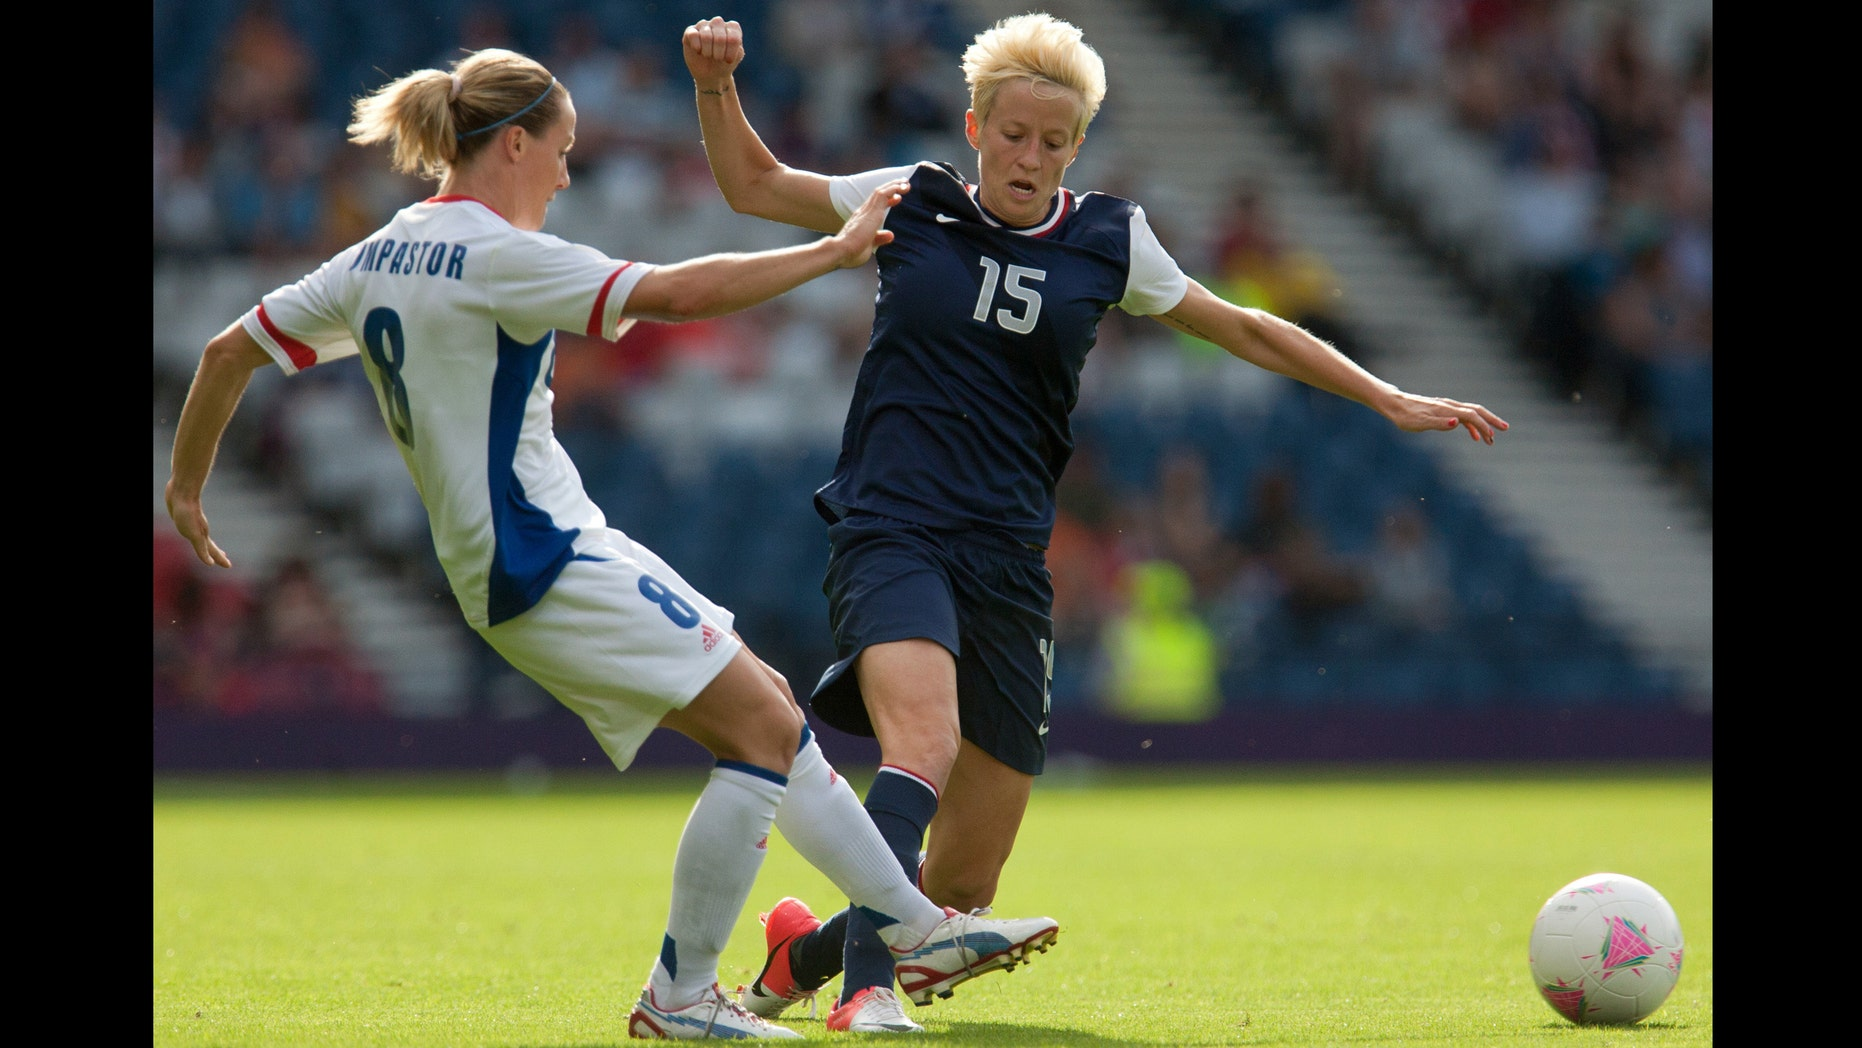 France's Sonia Bompastor, left, vies for the ball with United States' Megan Rapinoe during the women's group G soccer match between the United States and France at the London 2012 Summer Olympics, Wednesday, July 25, 2012, at Hampden Park Stadium in Glasgow. (AP Photo/Chris Clark)